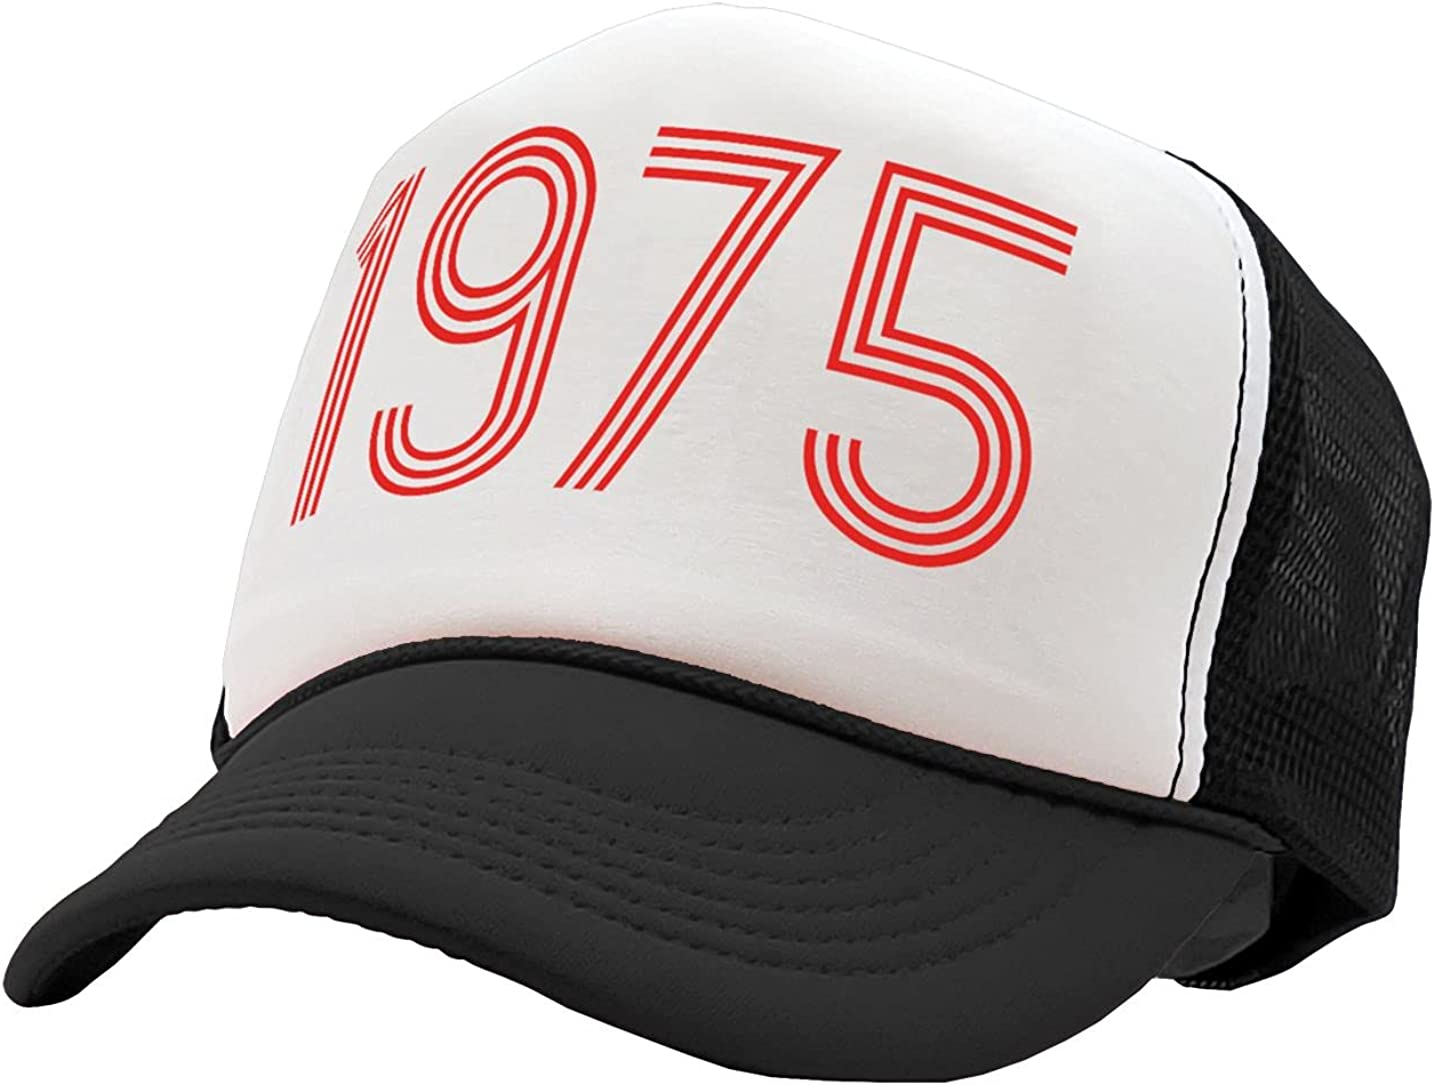 The Goozler - 1975 - Retro Classic Made in The 70's Font - Vintage Retro Style Trucker Cap Hat